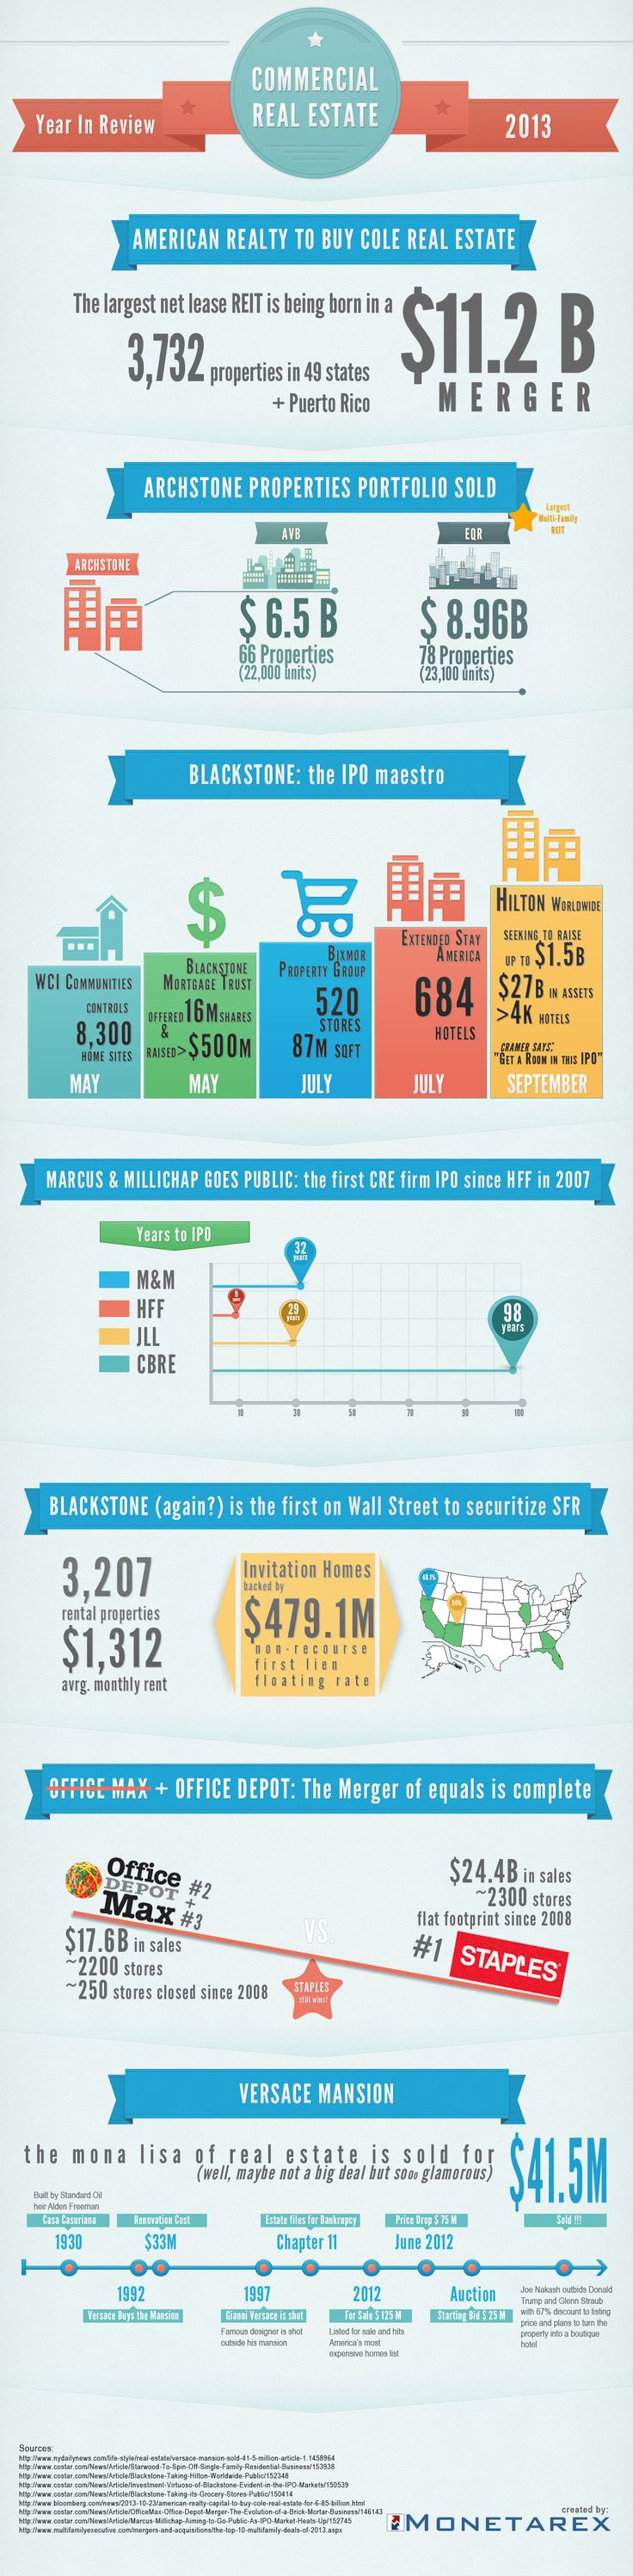 Overview of major deals/events that happened in Commercial Real Estate in 2013